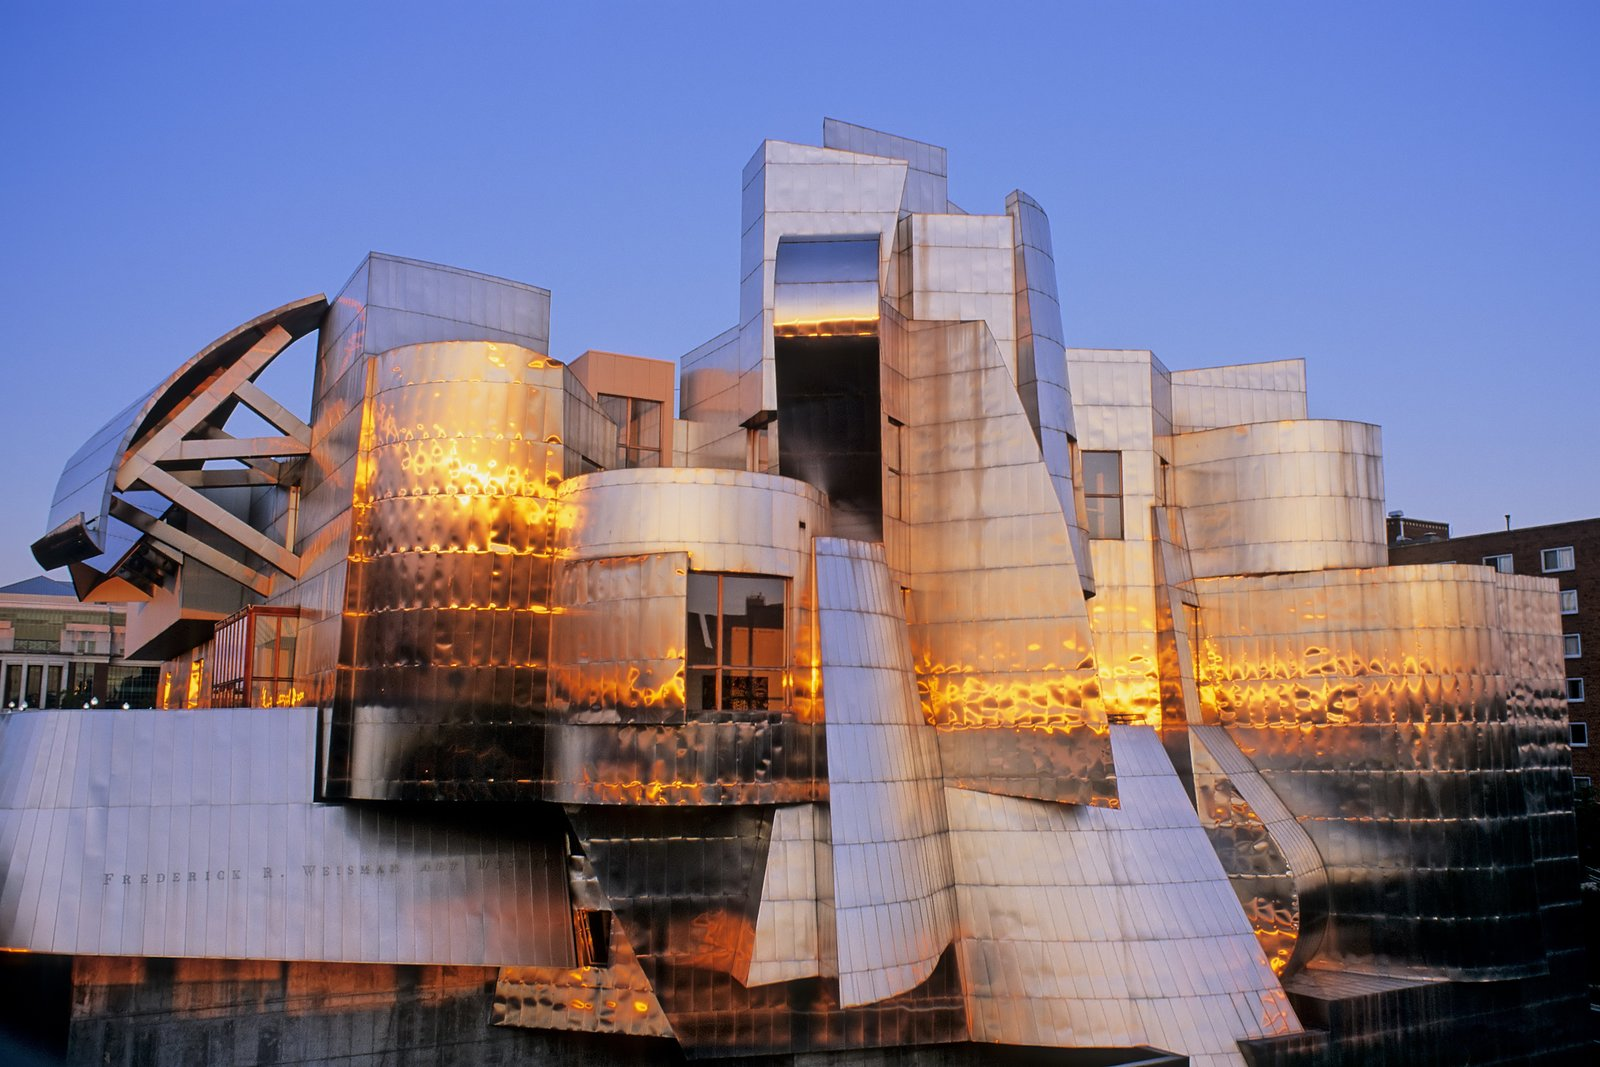 """Exterior and Metal Siding Material Representing Frank Gehry's first museum built from the ground-up, the Weisman Art Museum is located on the banks of the Mississippi River on the University of Minnesota's Twin Cities campus. Affectionately known as the """"Baby Bilbao,"""" a reference to the later Guggenheim's iconic museum in Spain, the Weisman's organic curves of stainless steel were designed without the aid of computer software, predating a process Gehry would later innovate through his use of CATIA modeling software.  Photo 4 of 14 in 13 Iconic Buildings Designed by Frank Gehry"""